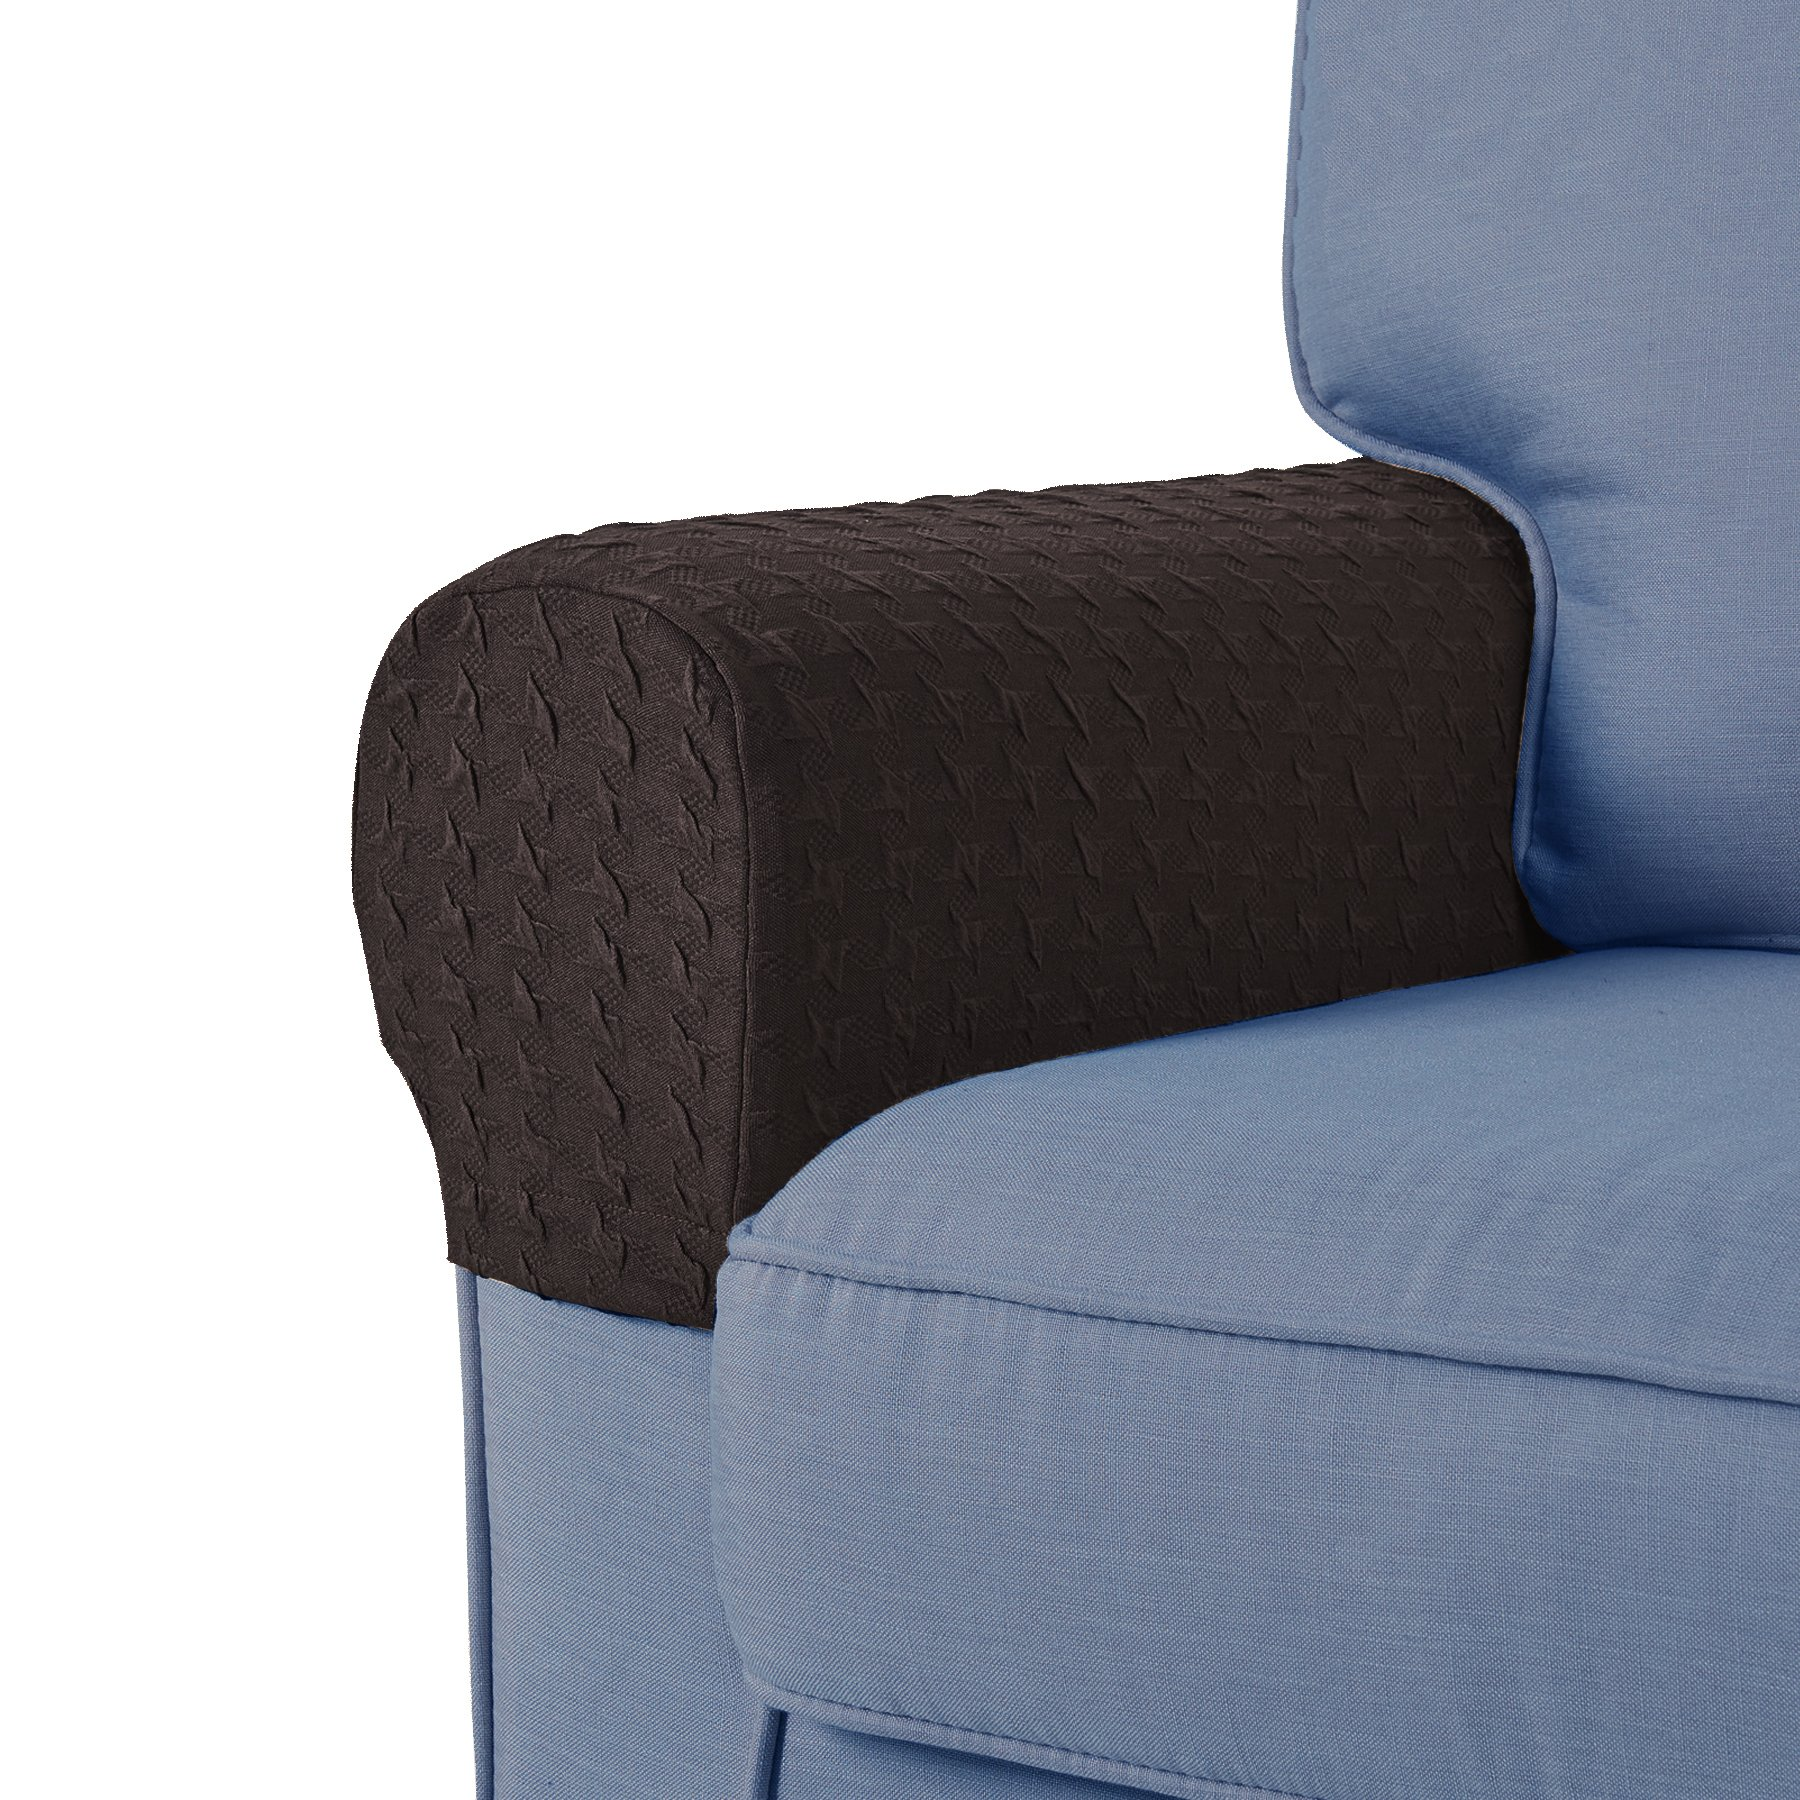 Guken Armrest Covers Anti-Slip Spandex Armchair Slipcovers Elastic Stretchable Furniture Protector (Coffee, 2pcs)